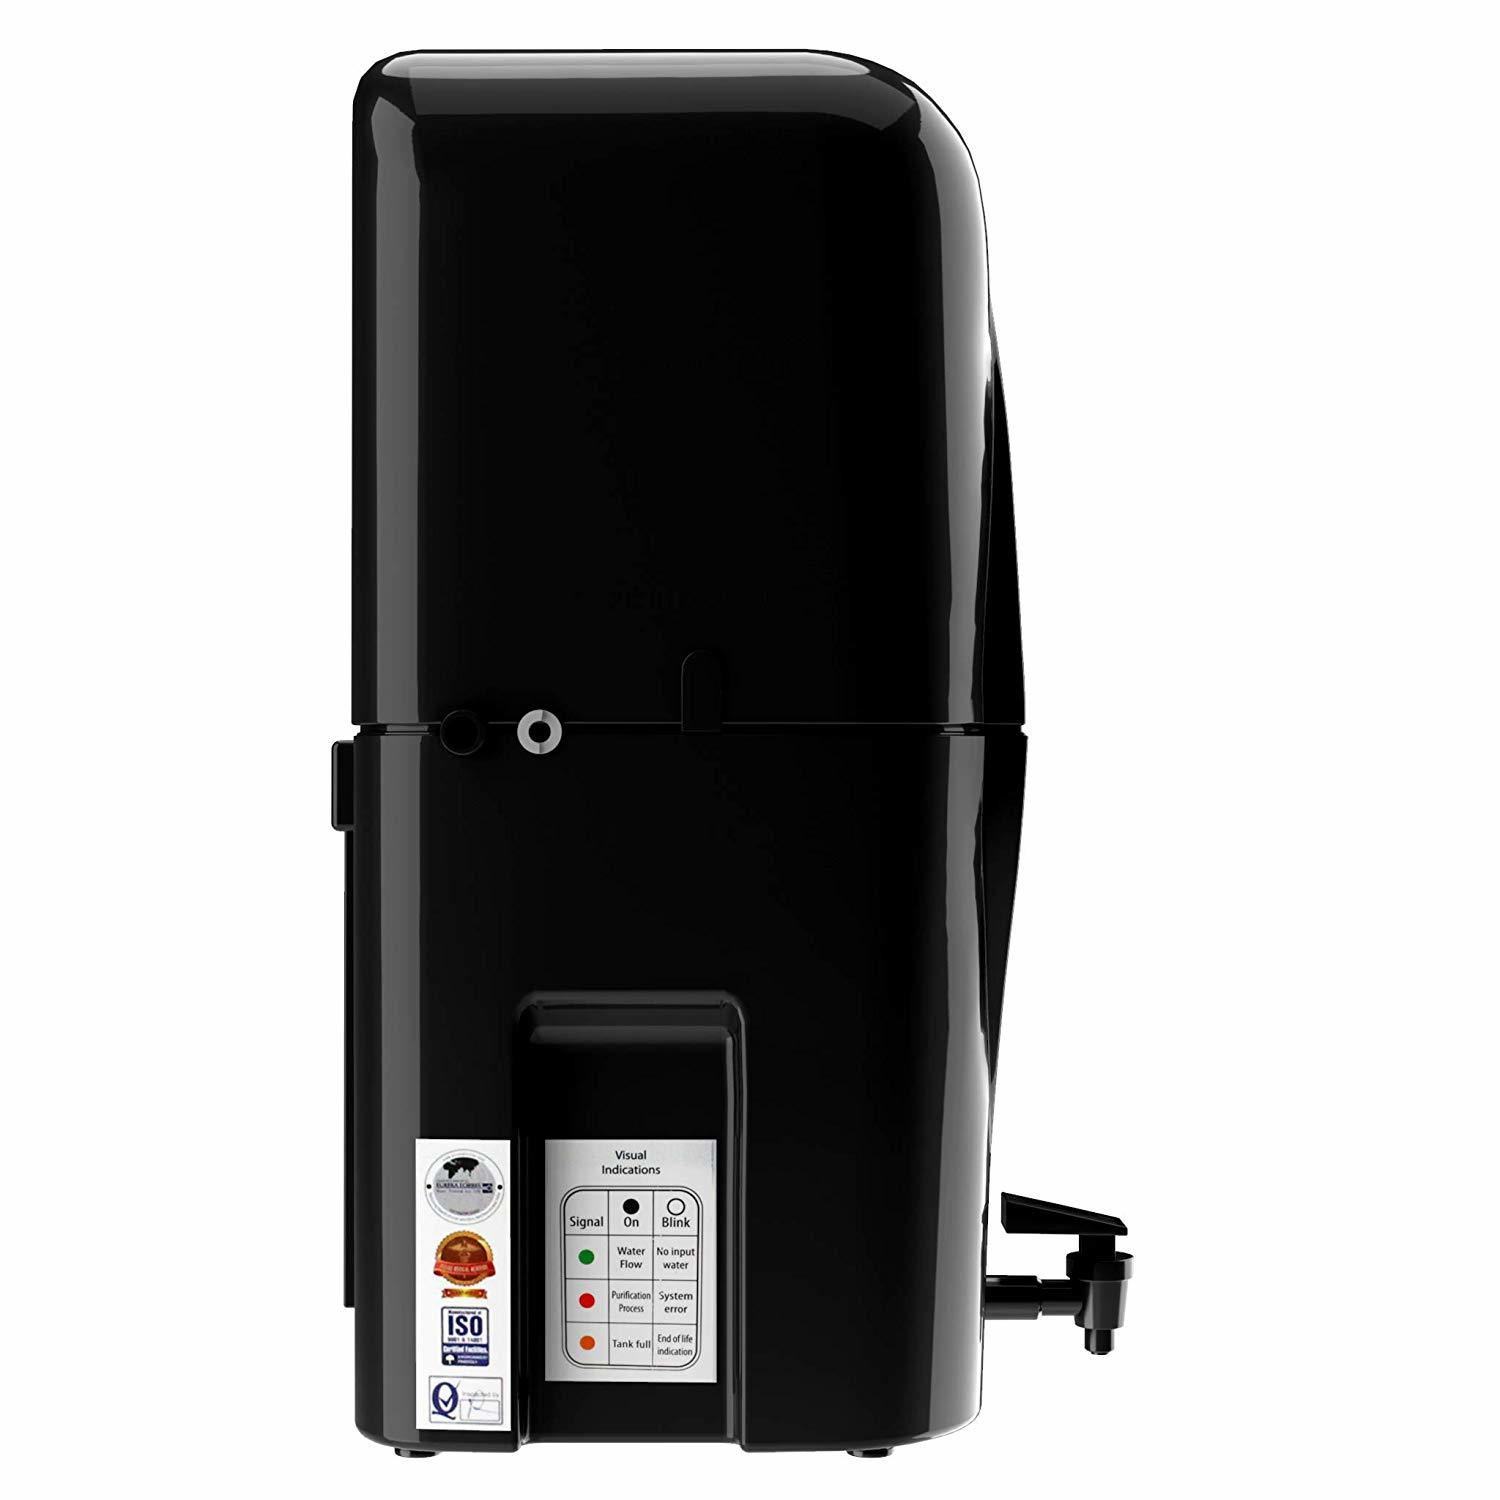 Eureka Forbes Aquasure from Aquaguard Smart Plus RO+UV+MTDS Water Purifier,Black